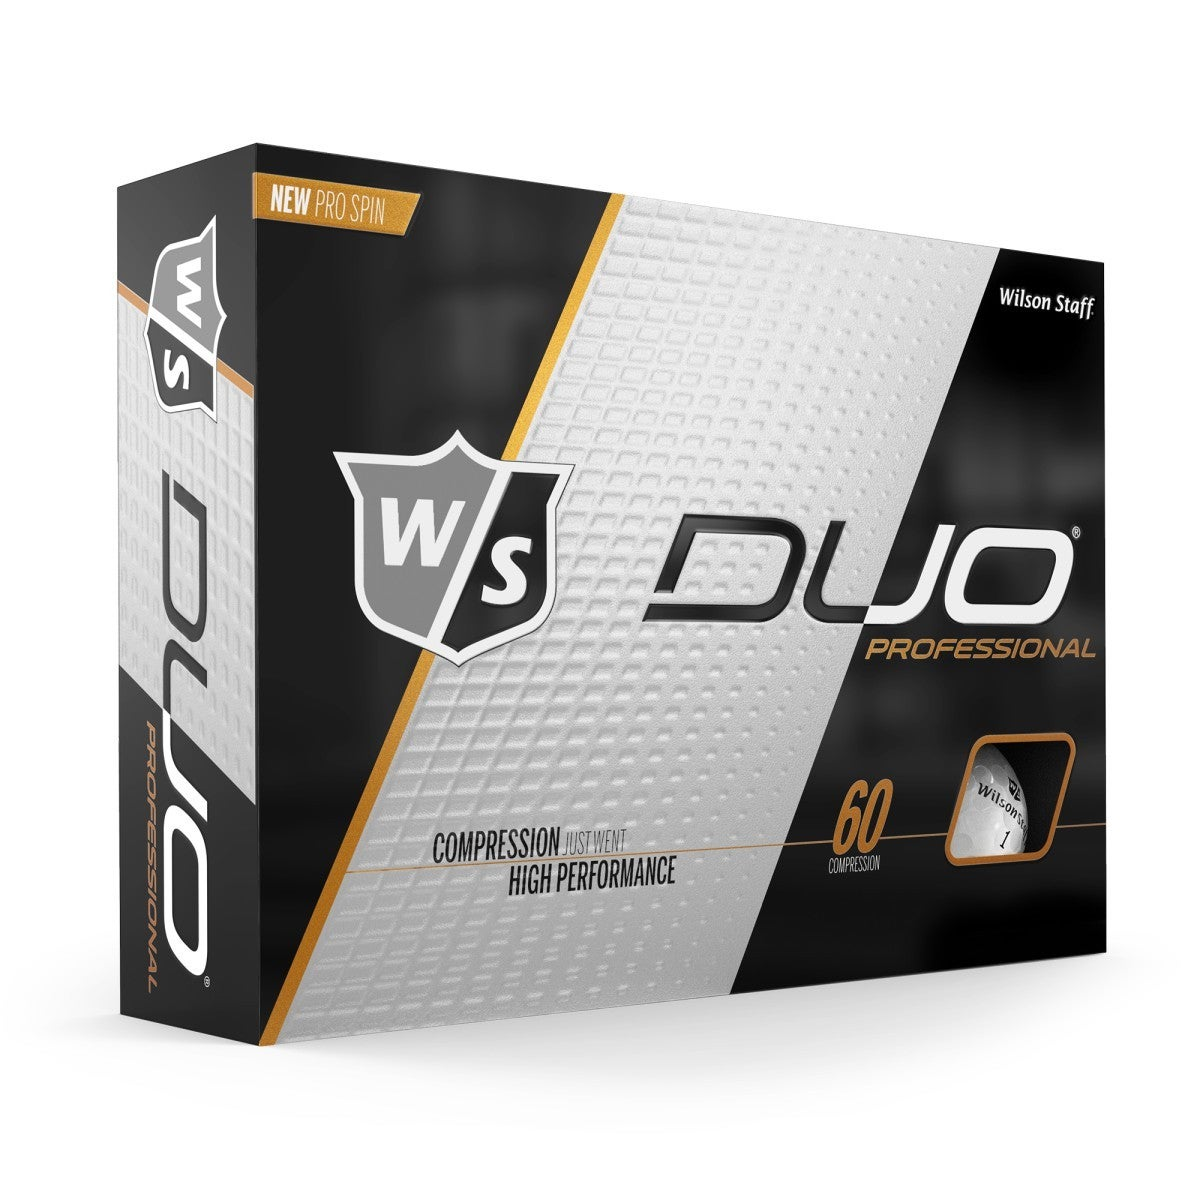 Duo Professional Golfbälle, weiß